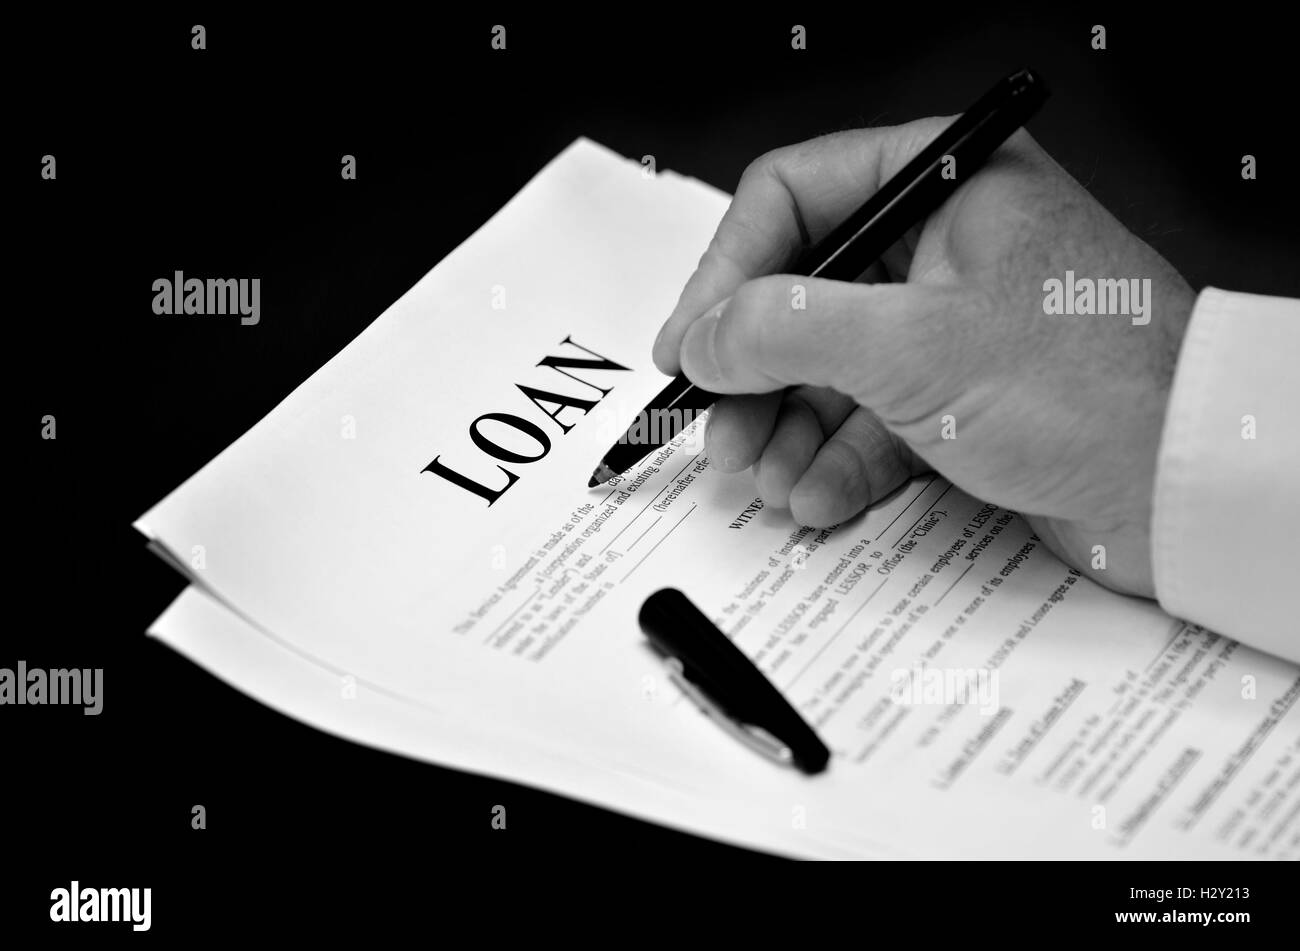 Signing Legal Document Black And White Stock Photos Images Alamy - Signing legal documents